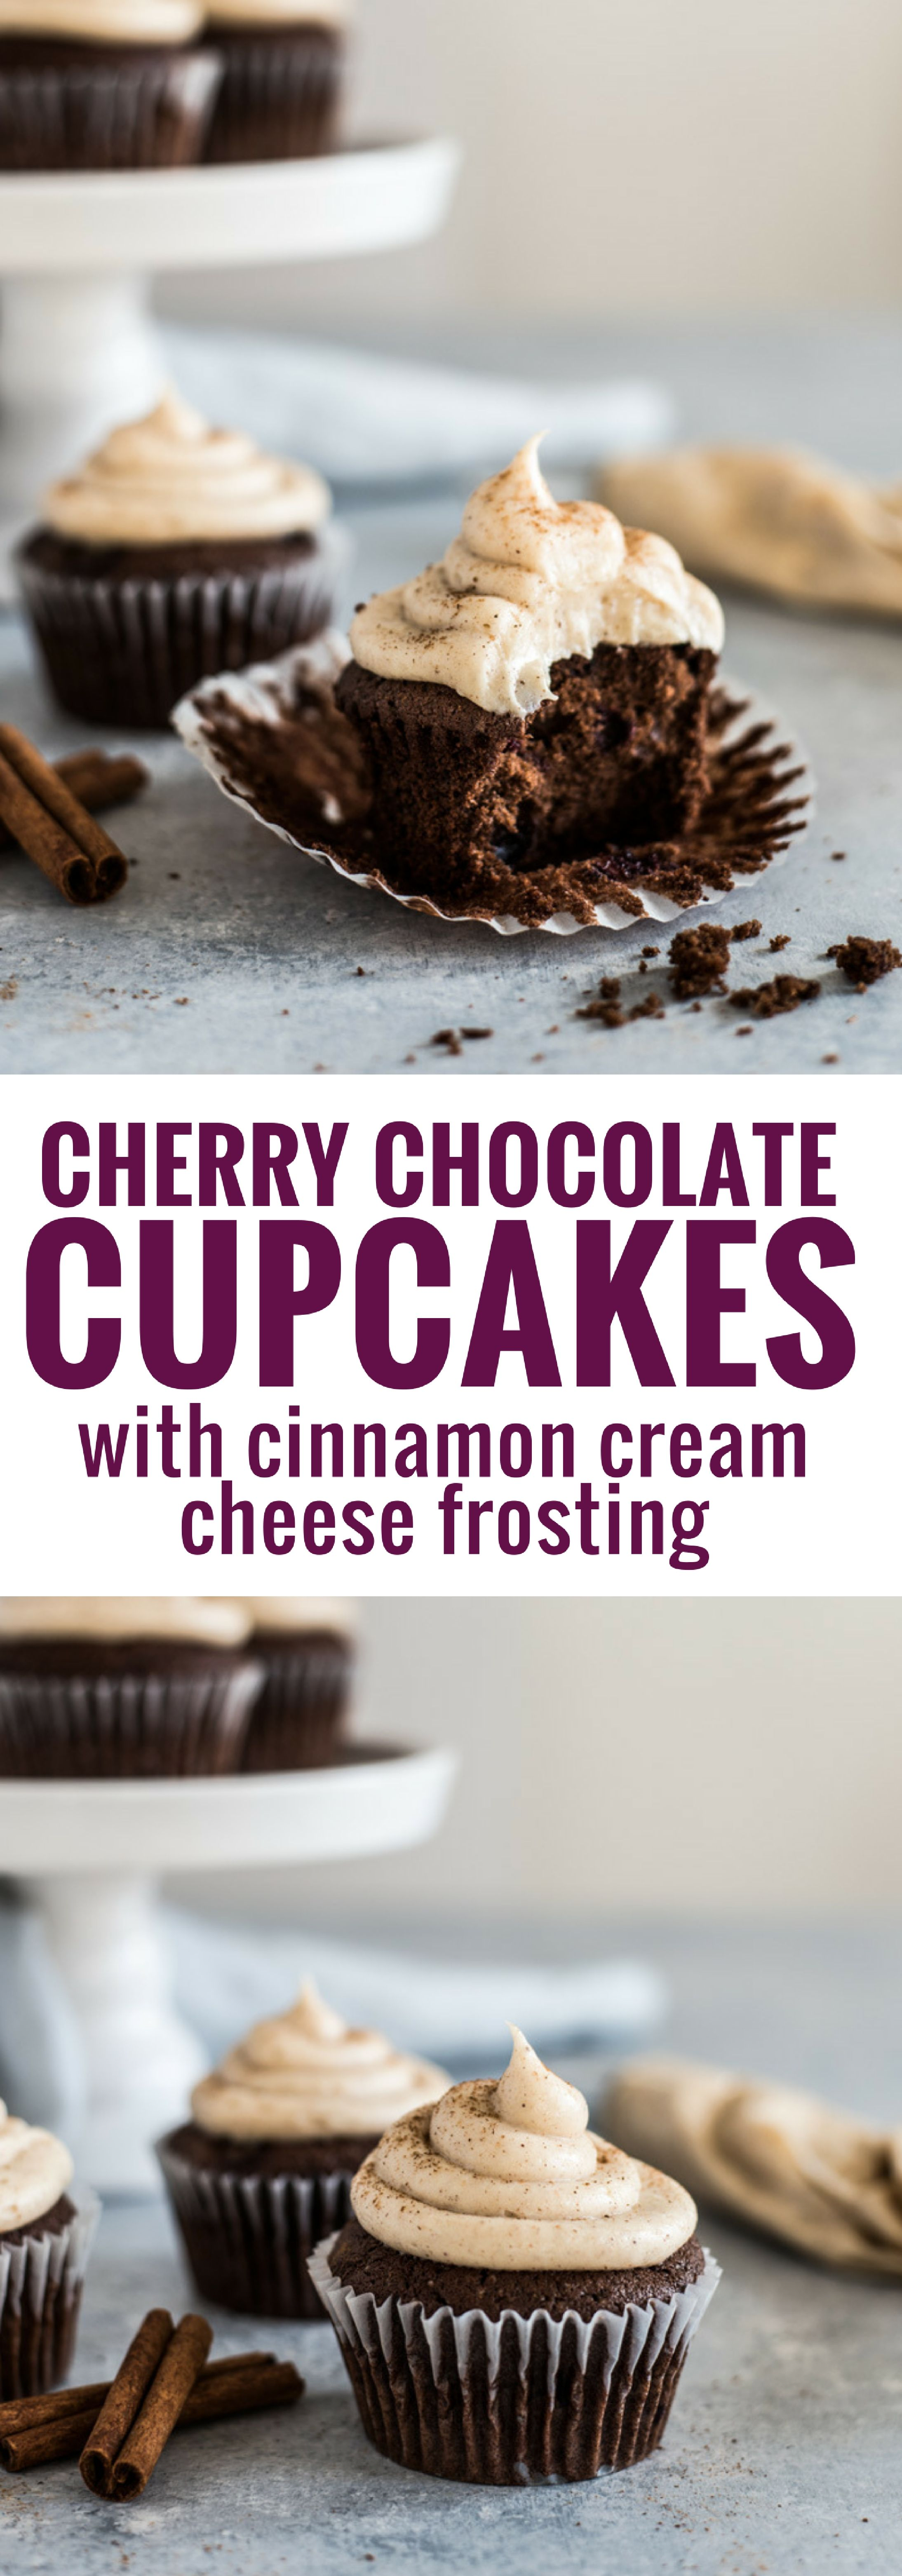 These Cherry Chocolate Cupcakes with Cinnamon Cream Cheese Frosting are decadent, fluffy and perfectly moist. Treat yourself! via @isabeleats